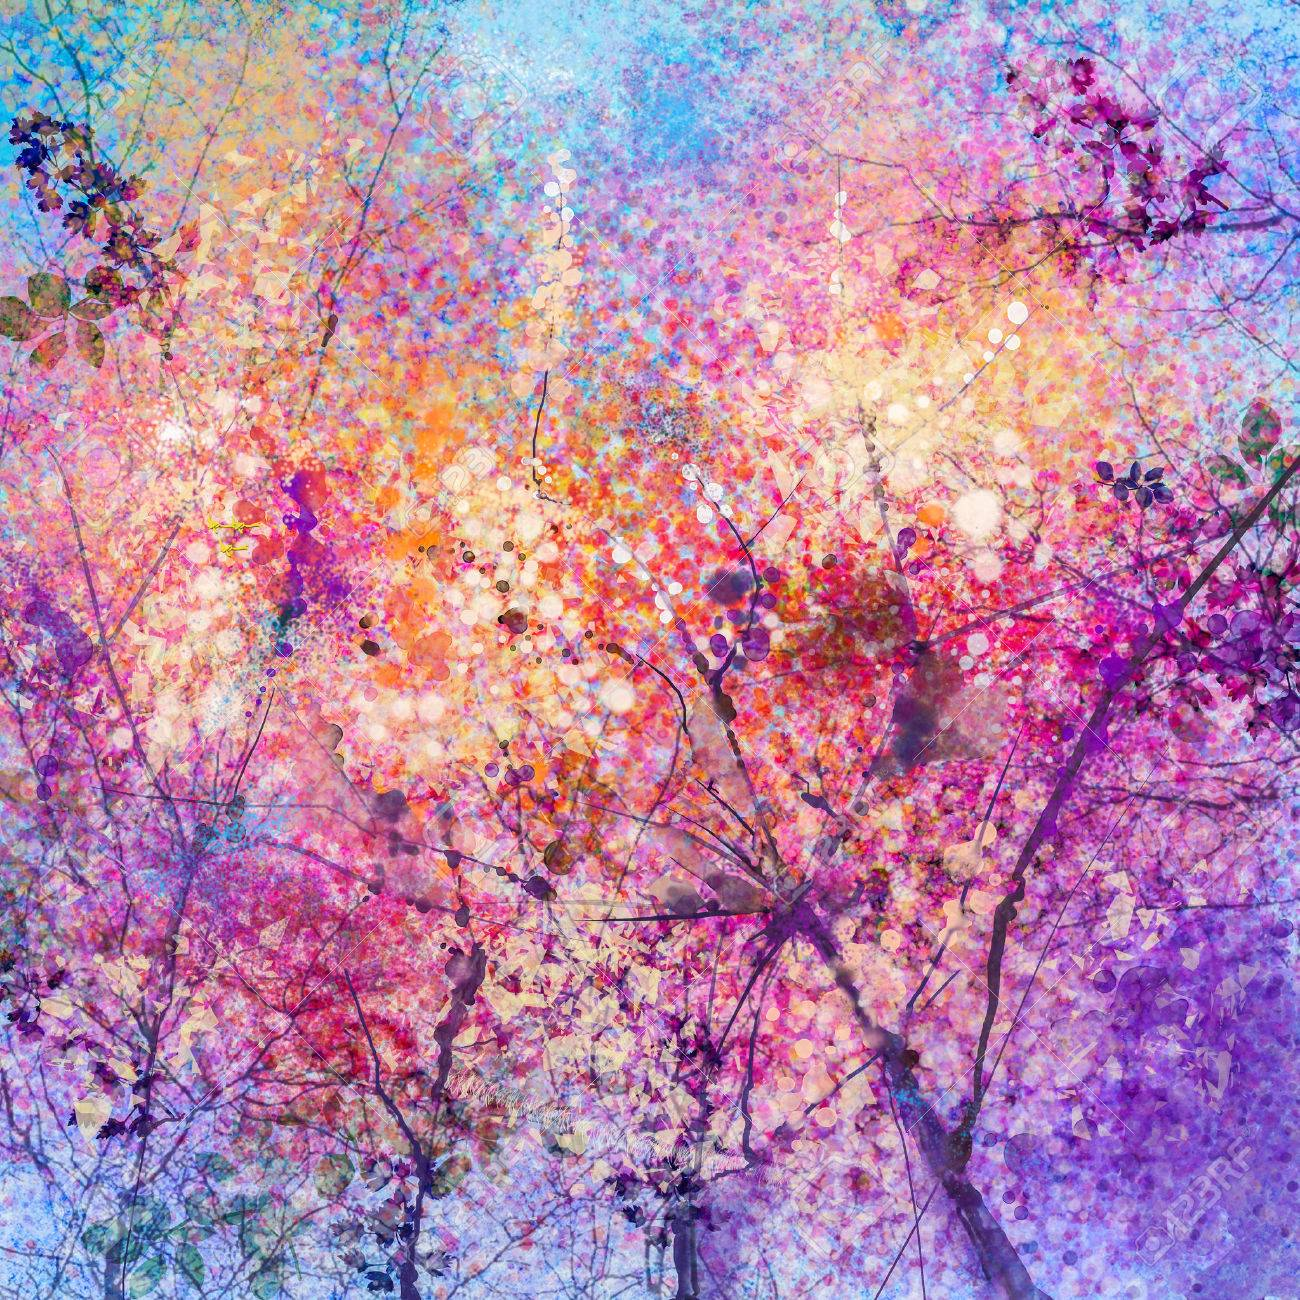 Abstract watercolor painting of spring flowers nature background abstract watercolor painting of spring flowers nature background cherry blossom pink flowers with mightylinksfo